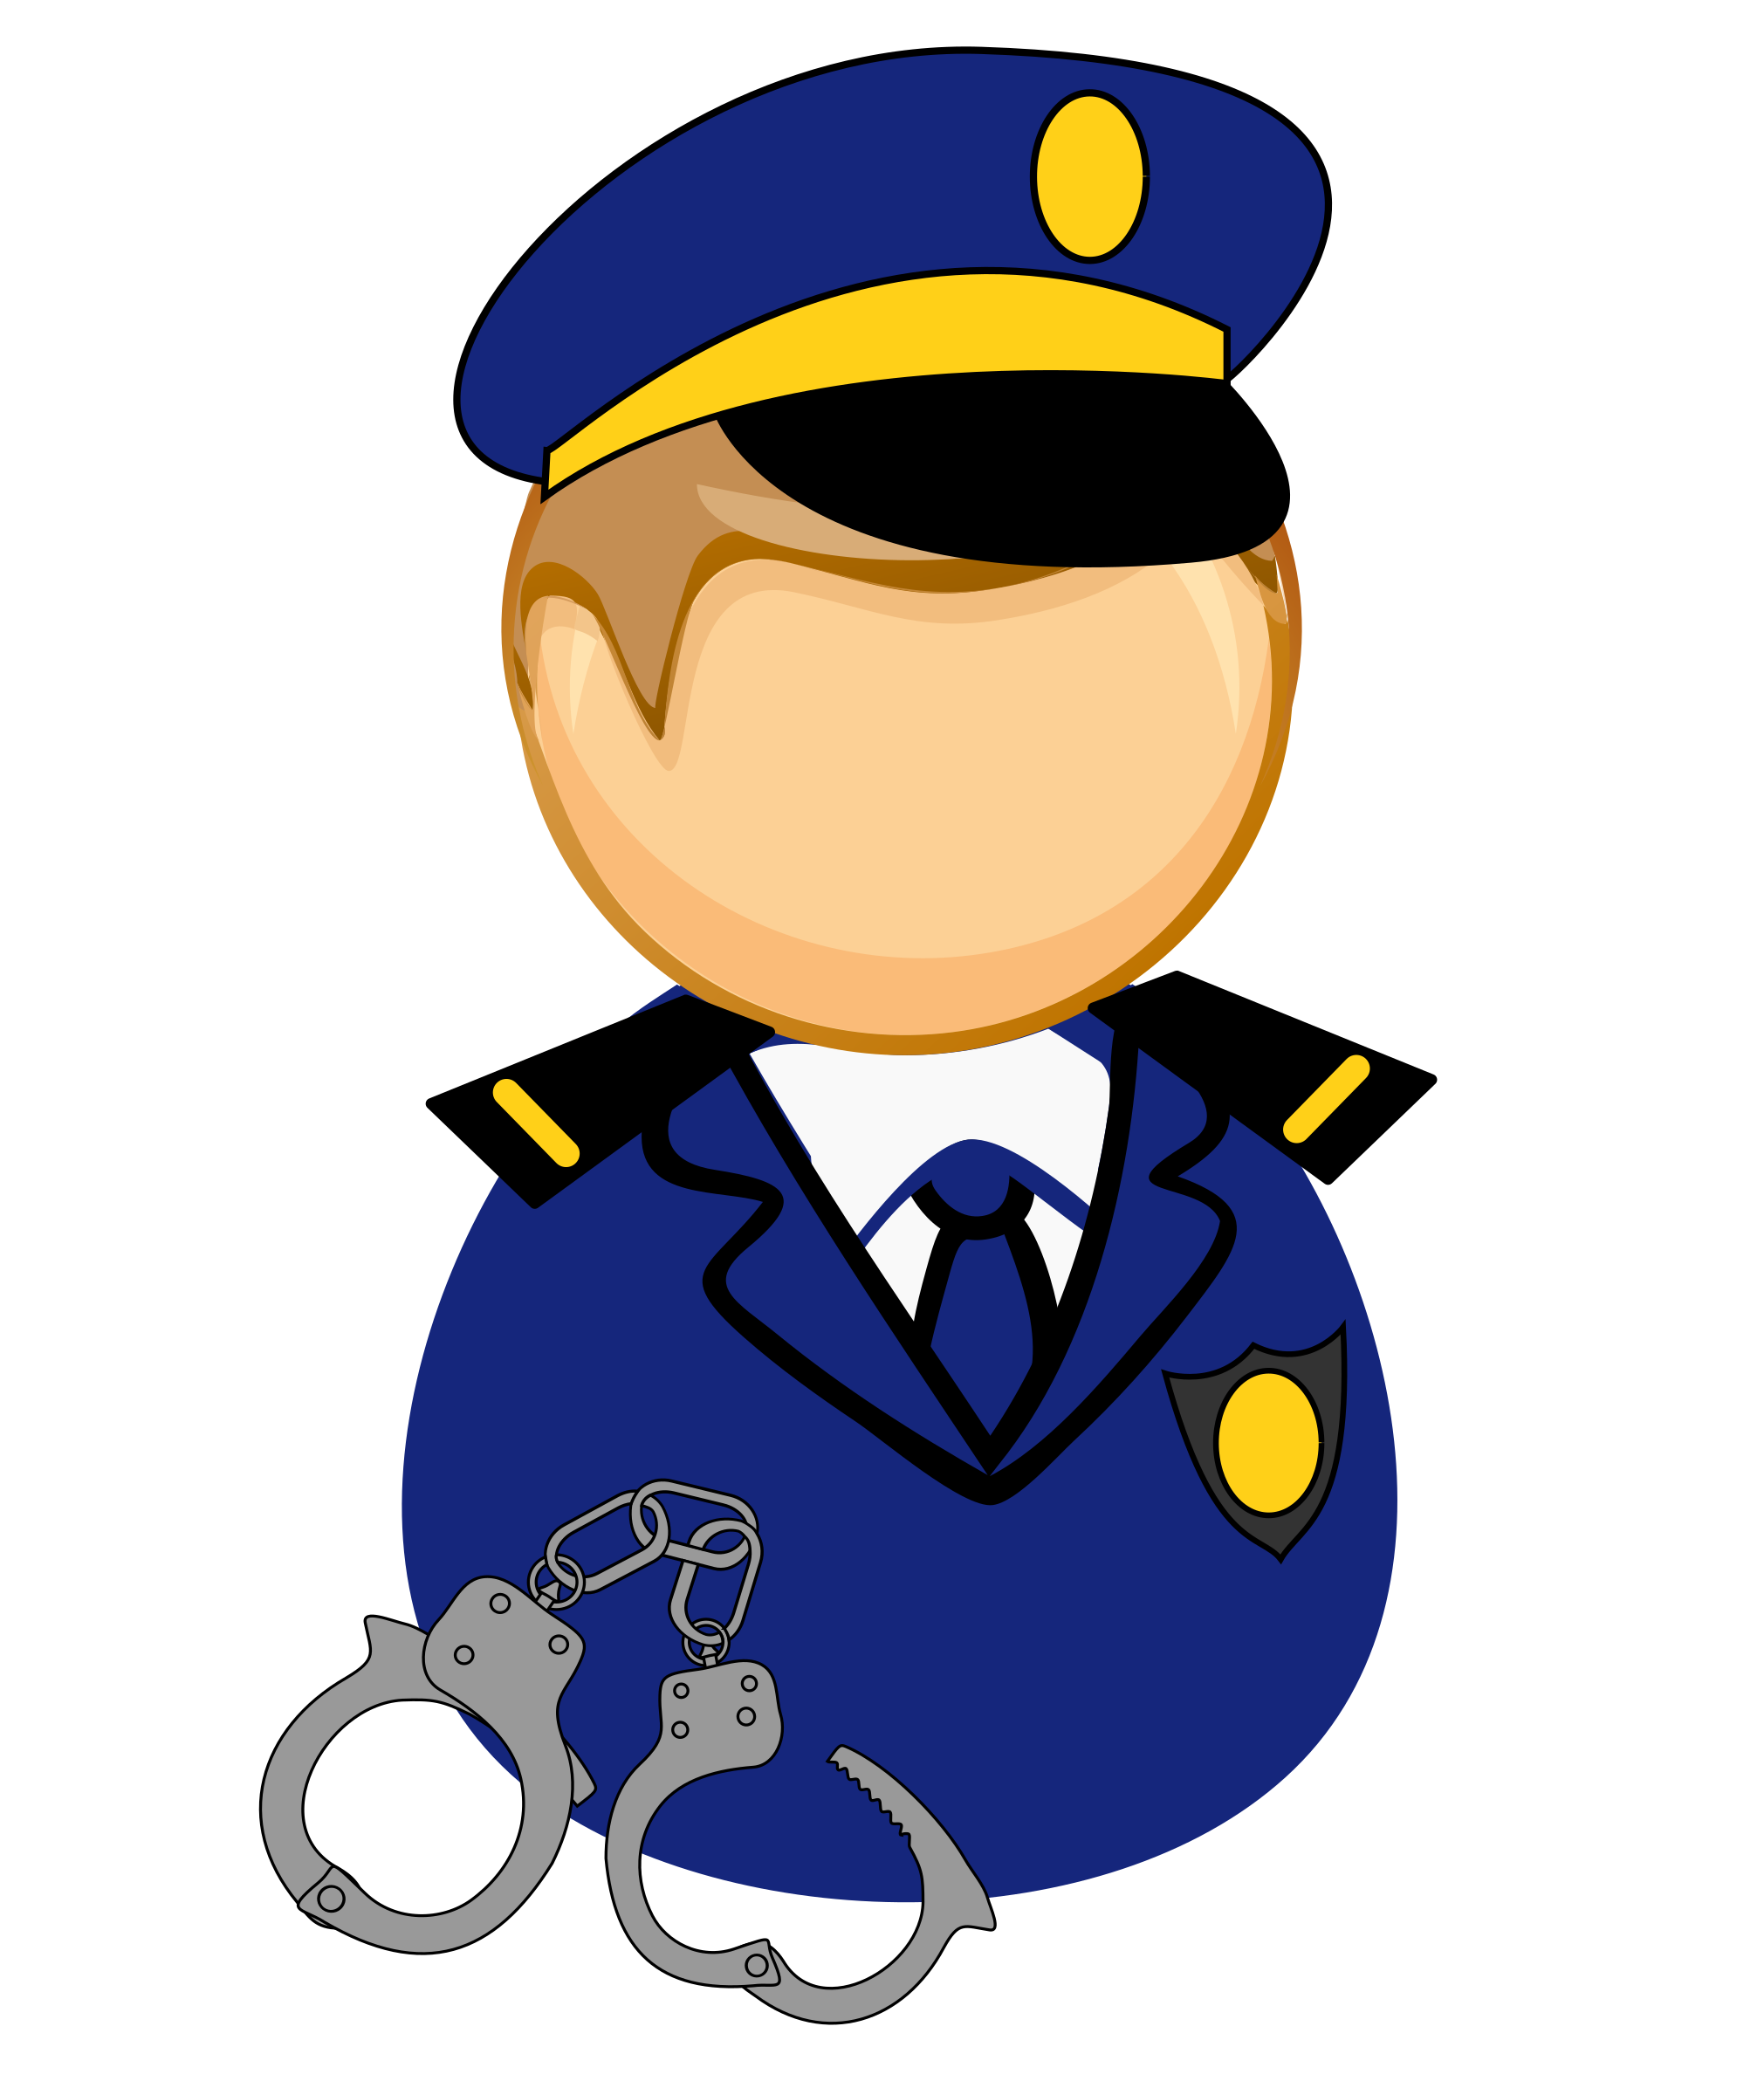 Handcuff clipart policeman. First responder icon icons